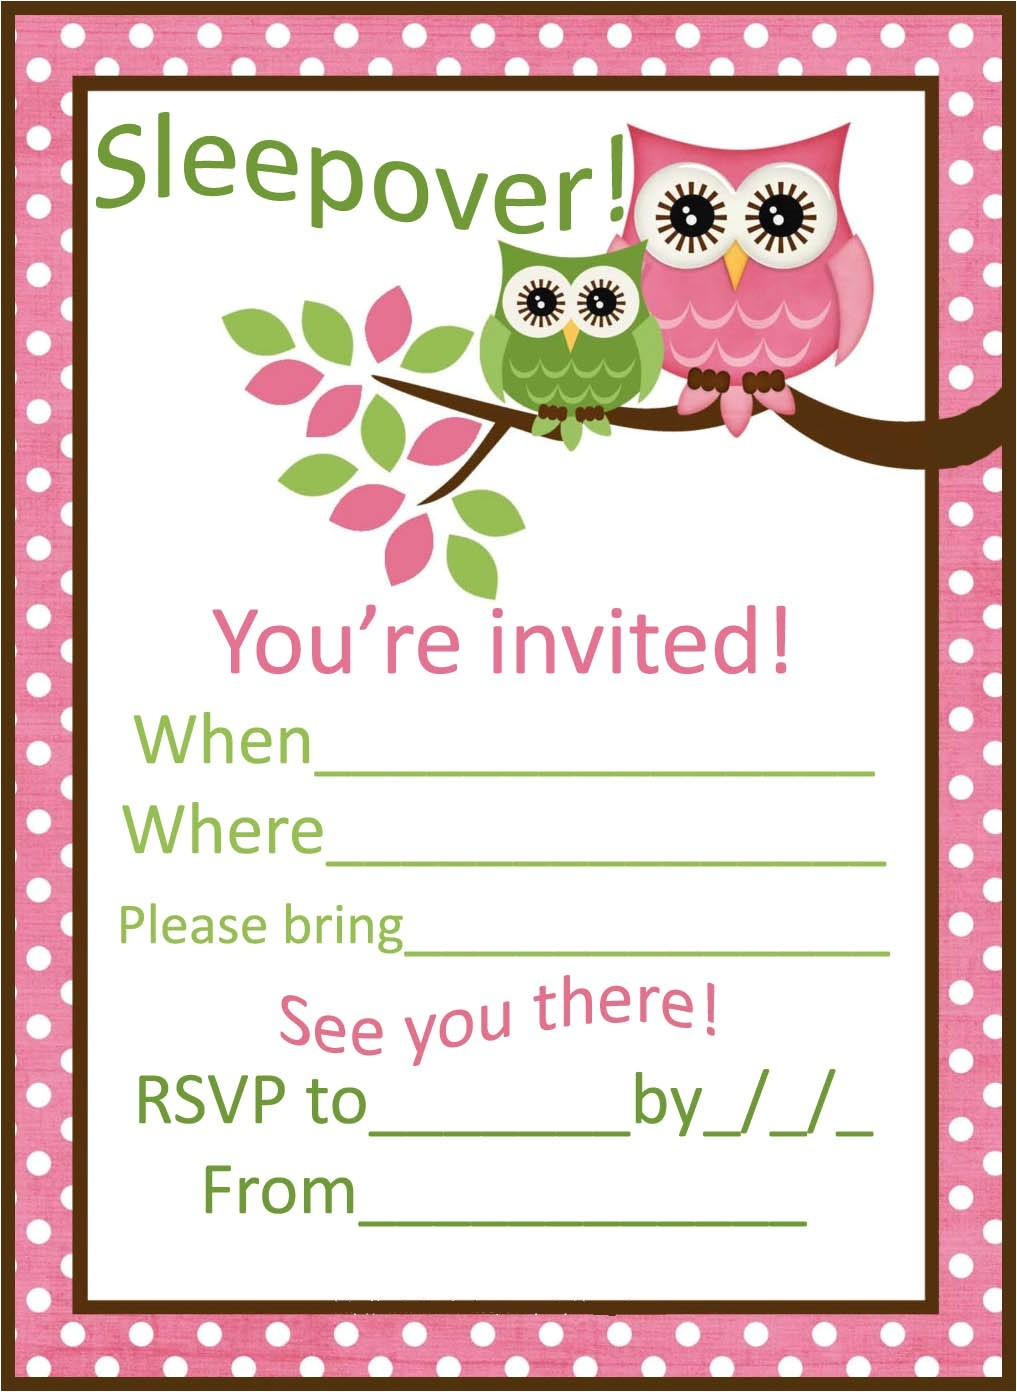 sleepover party invitations